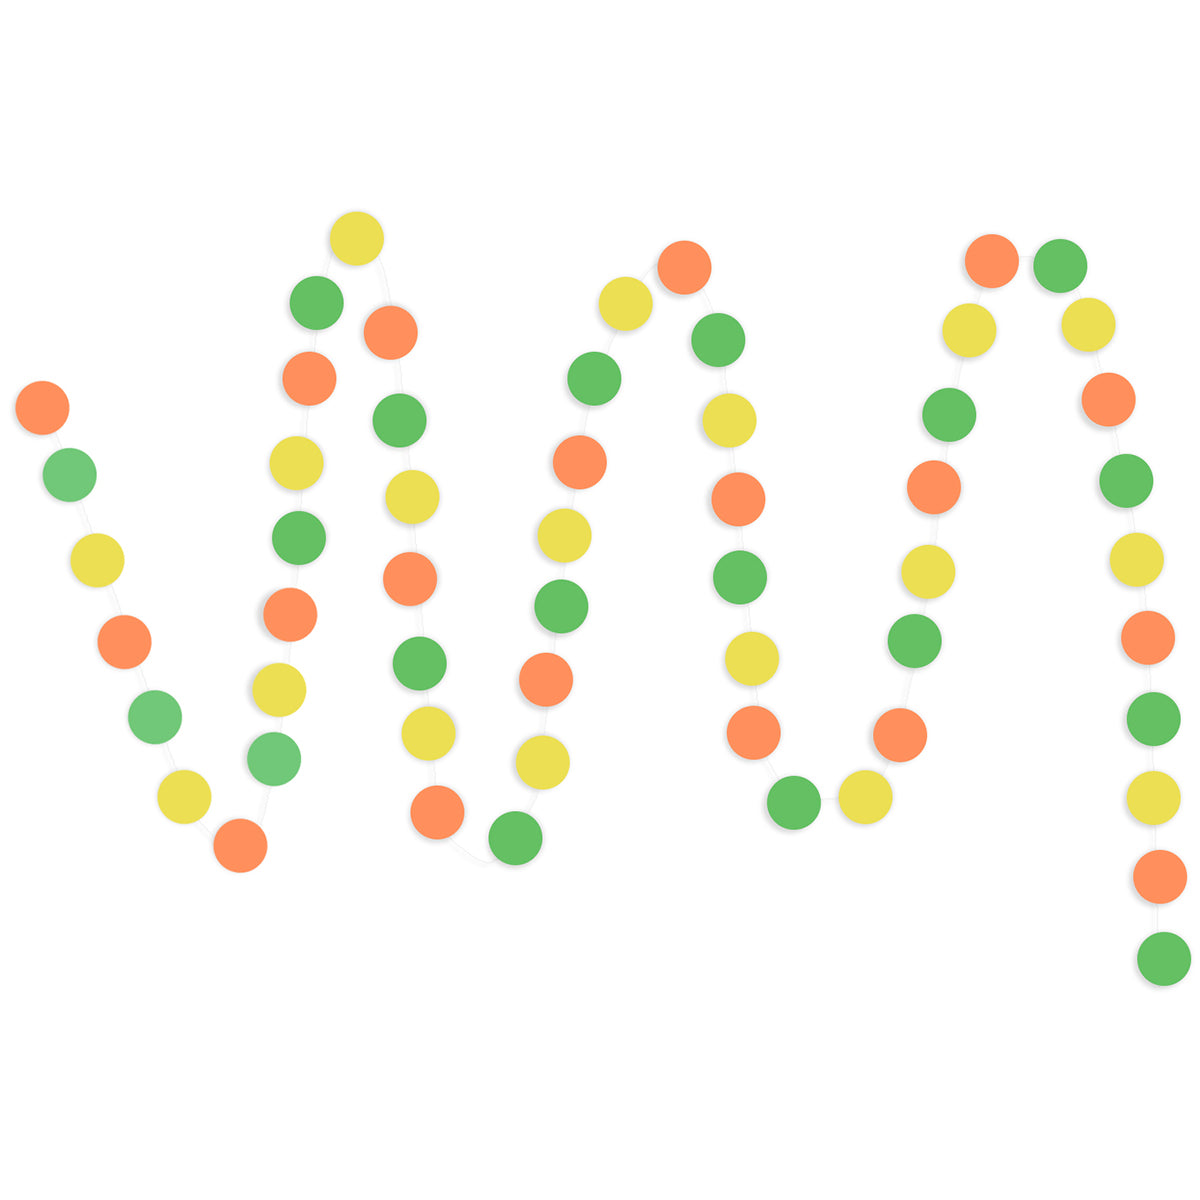 A string of Yellow, Orange, Green Circle Paper Garland show with a white background.